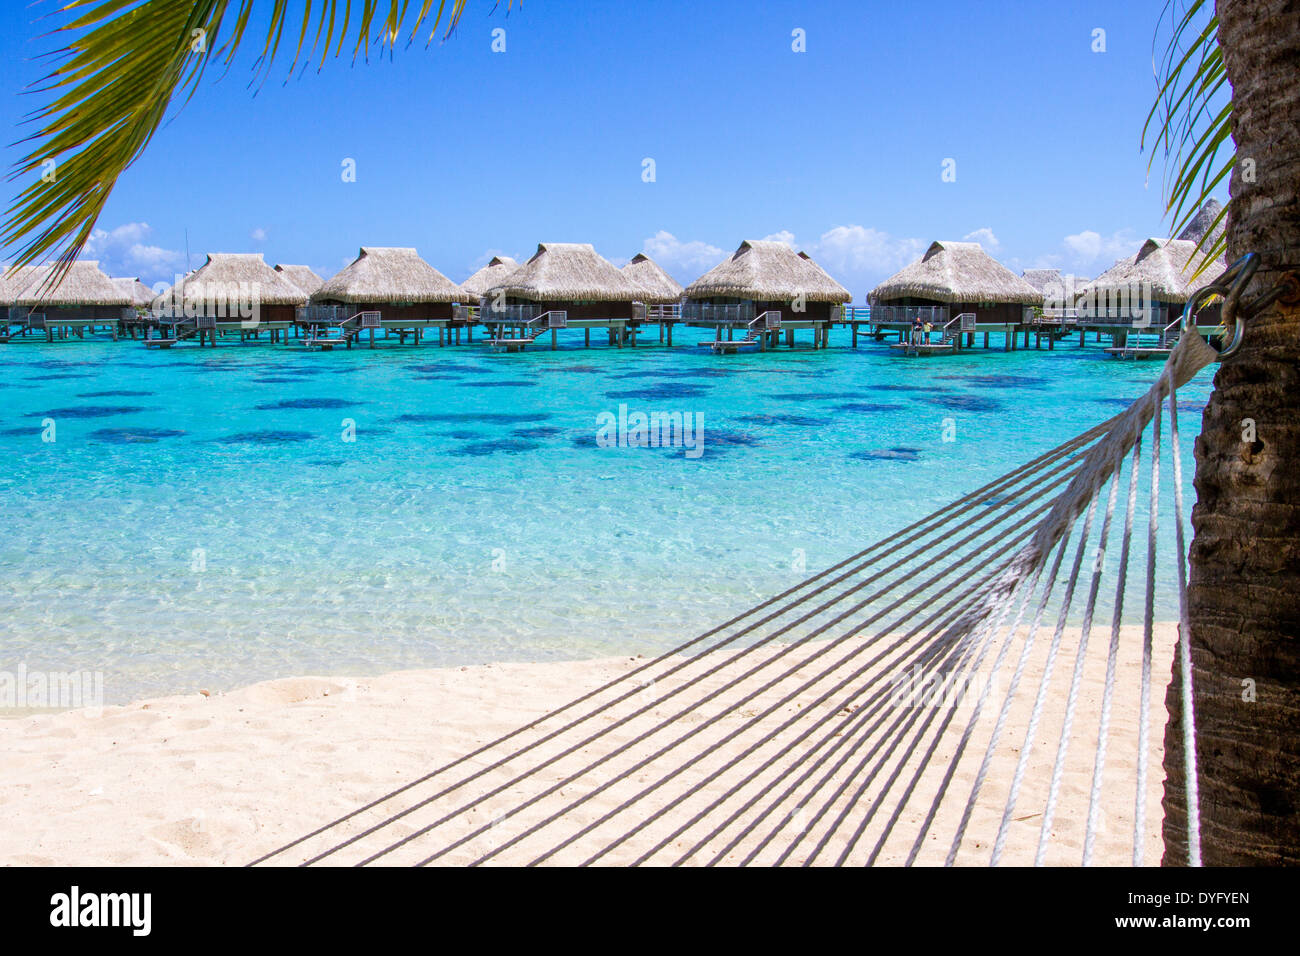 Rope hammock attached to palm tree on a beach with overwater bungalows by the turquoise waters of Moorea in French Polynesia - Stock Image